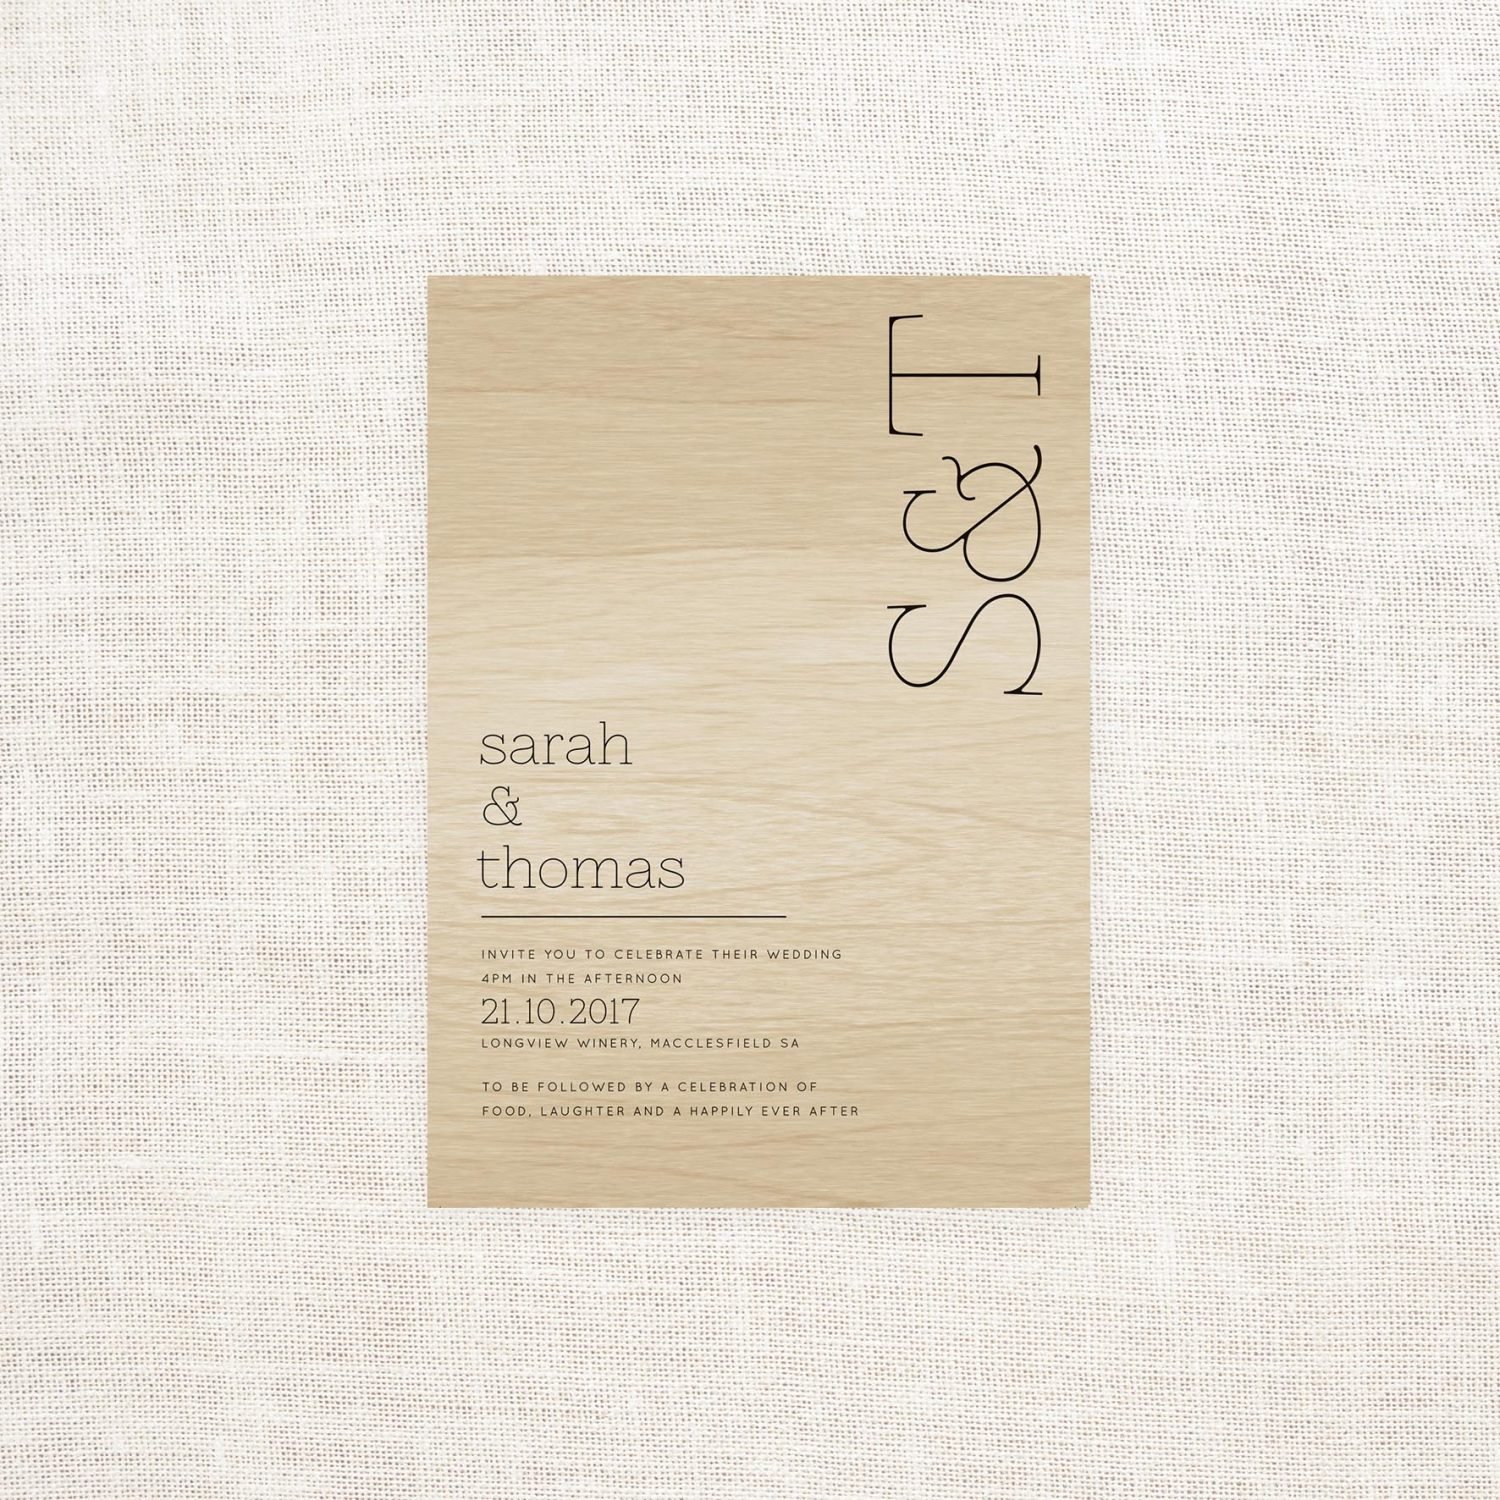 Initials Wooden Wedding Invitations - Sail and Swan Studio